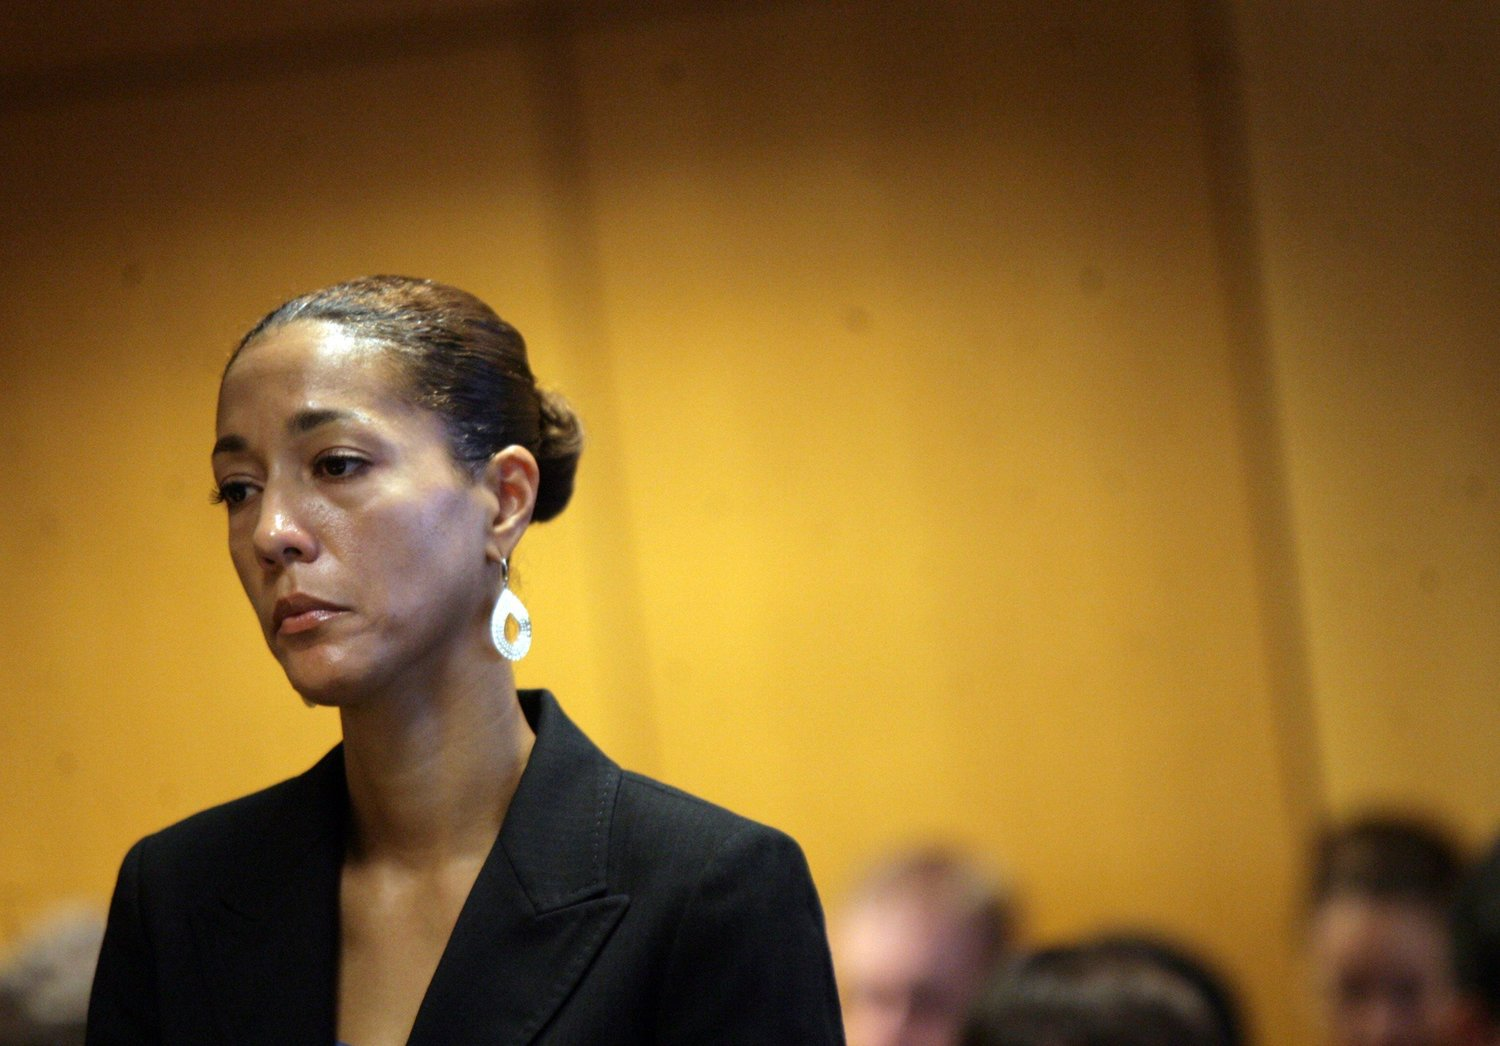 Christine Beatty listens as lawyers discuss Mayor Kwame Kilpatrick's guilty plea at the Frank Murphy Hall of Justice in September 2008. Christine and Kwame were charged with perjury and obstruction of justice in the Gary Brown whistleblower case.  Courtesy of the Detroit Free Press.